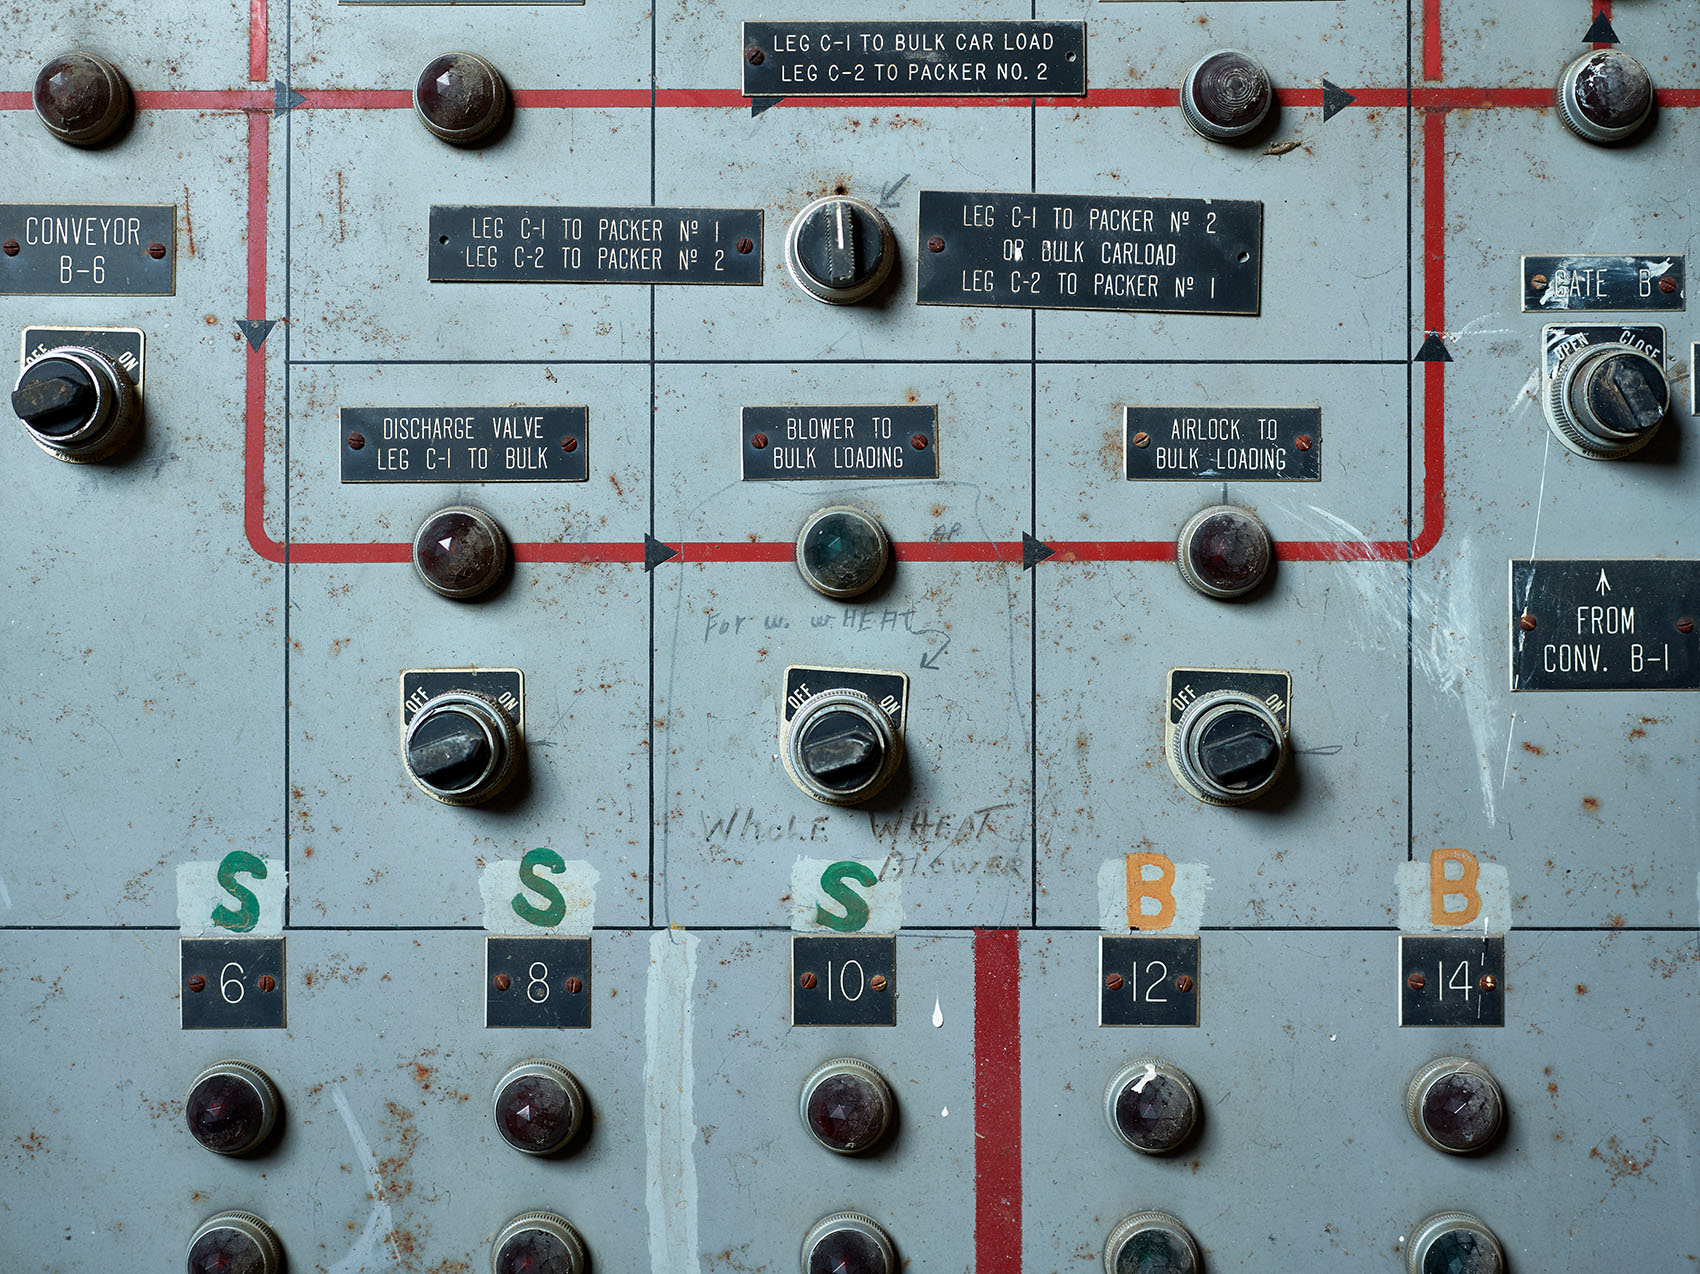 old analog industrial control panel silo city